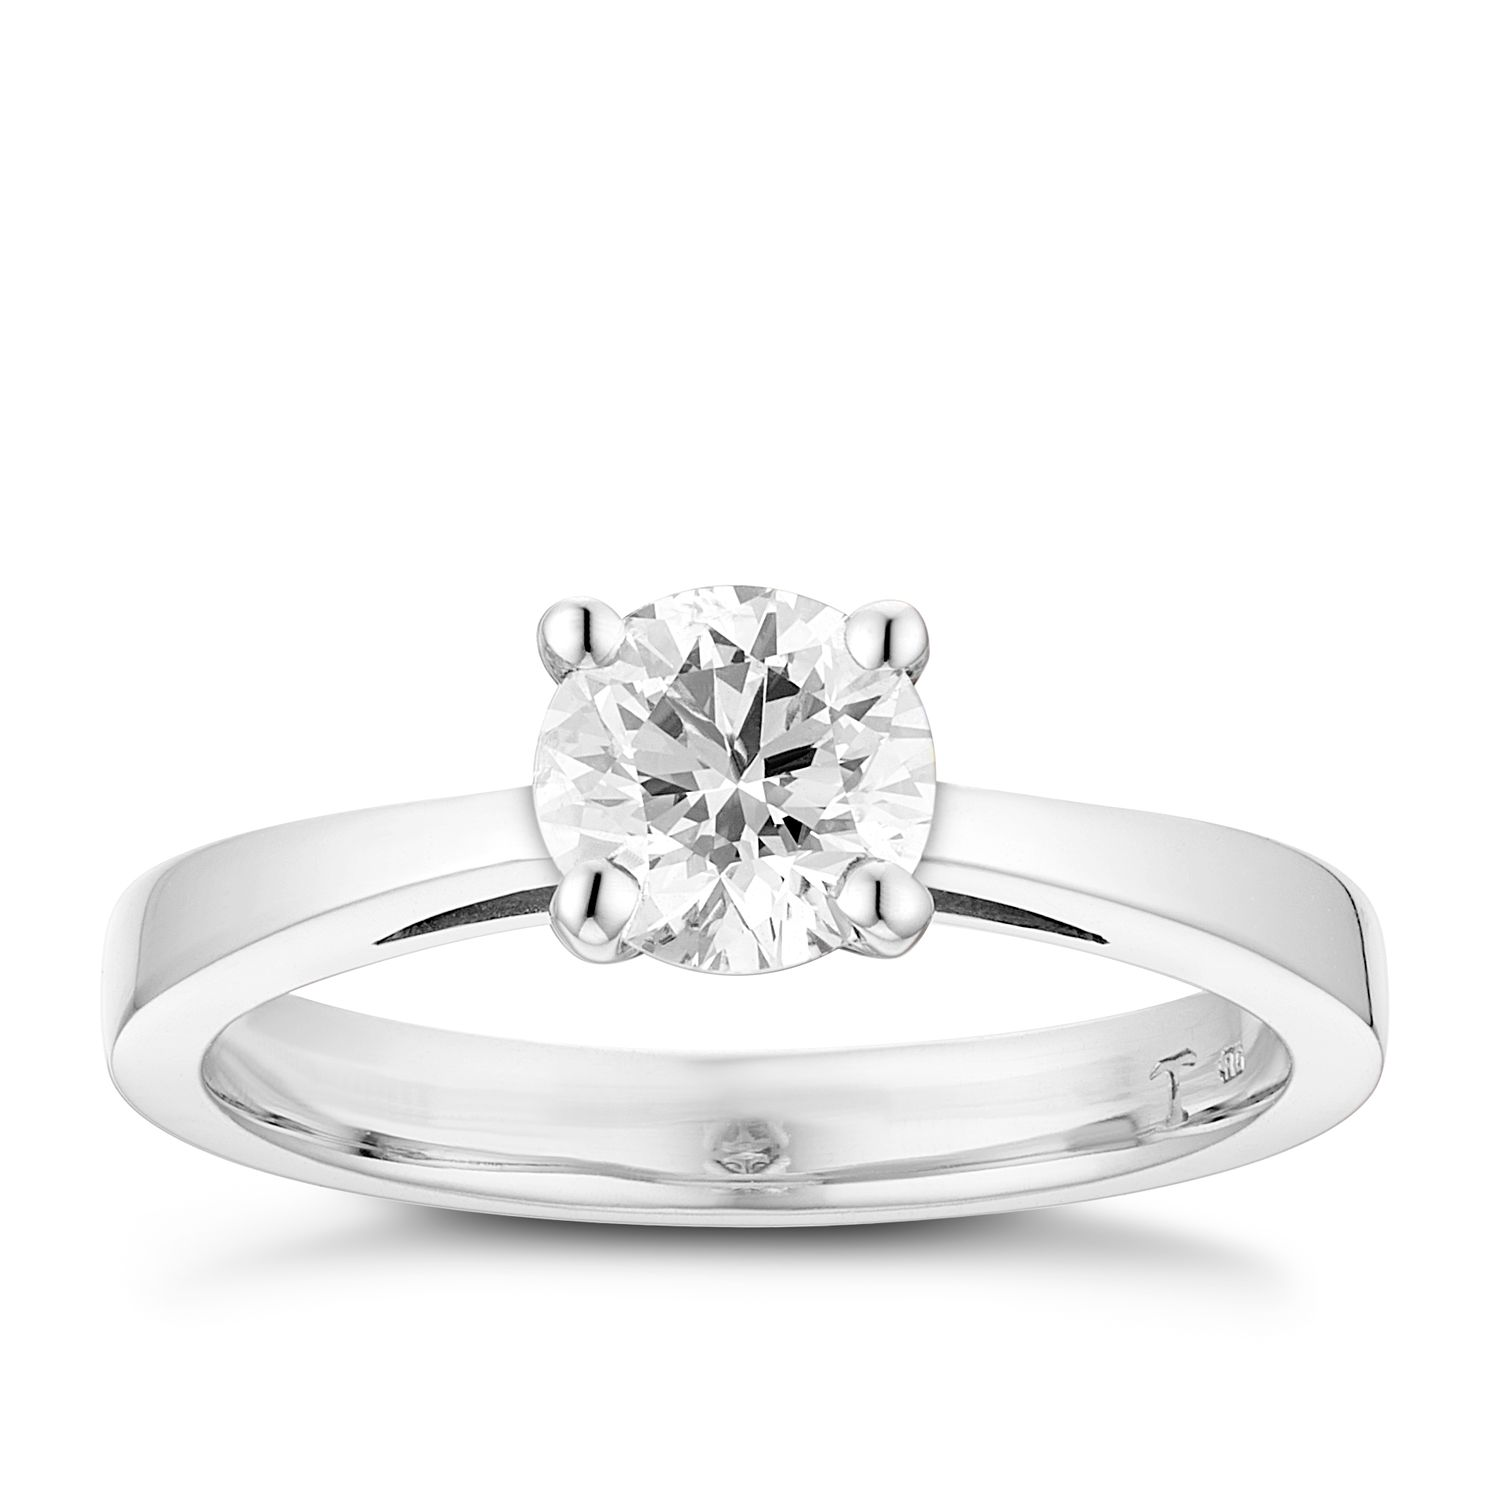 Tolkowsky 18ct White Gold 1ct Hi-Si2 Diamond Ring - Product number 8698287